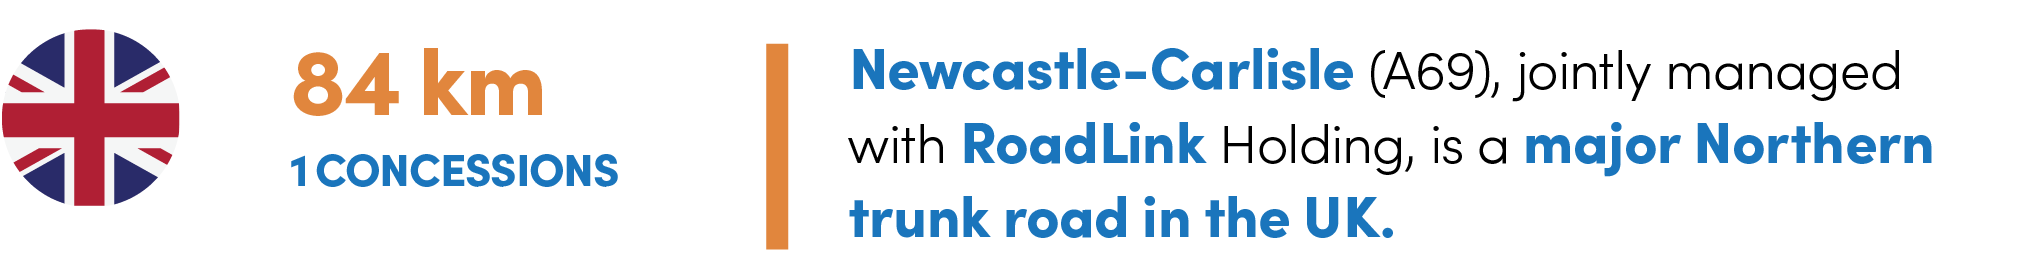 Newcastle-Carlisle (A69), jointly managed with RoadLink.png